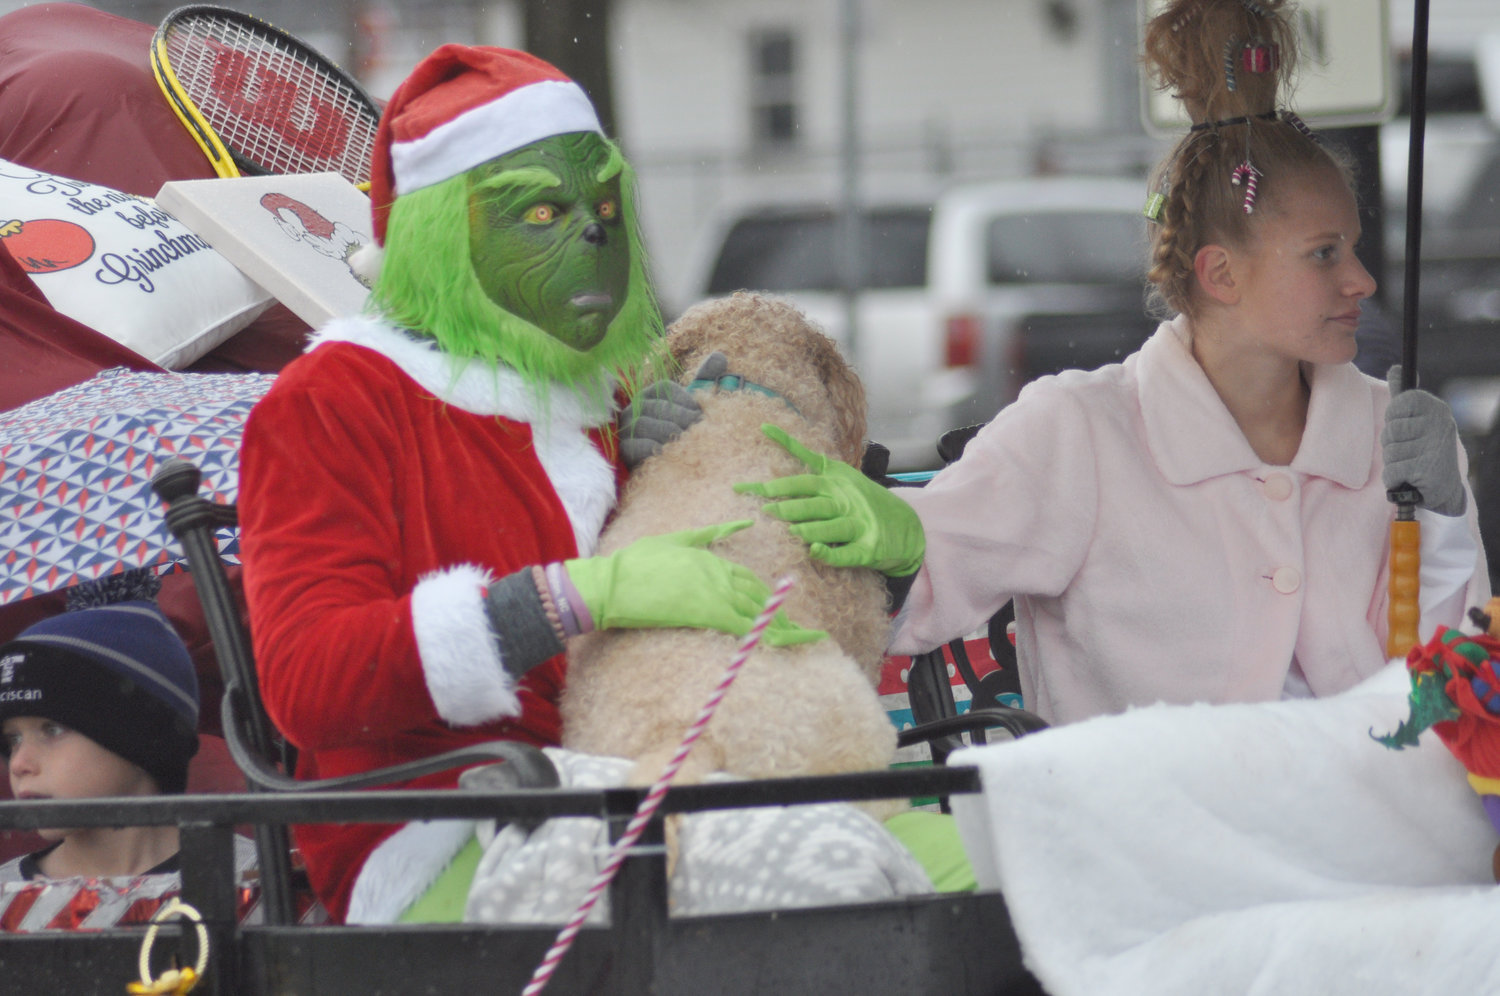 The Grinch rides in the 2019 Christmas Parade in downtown Crawfordsville. This year's parade has been canceled due to the COVID-19 pandemic.